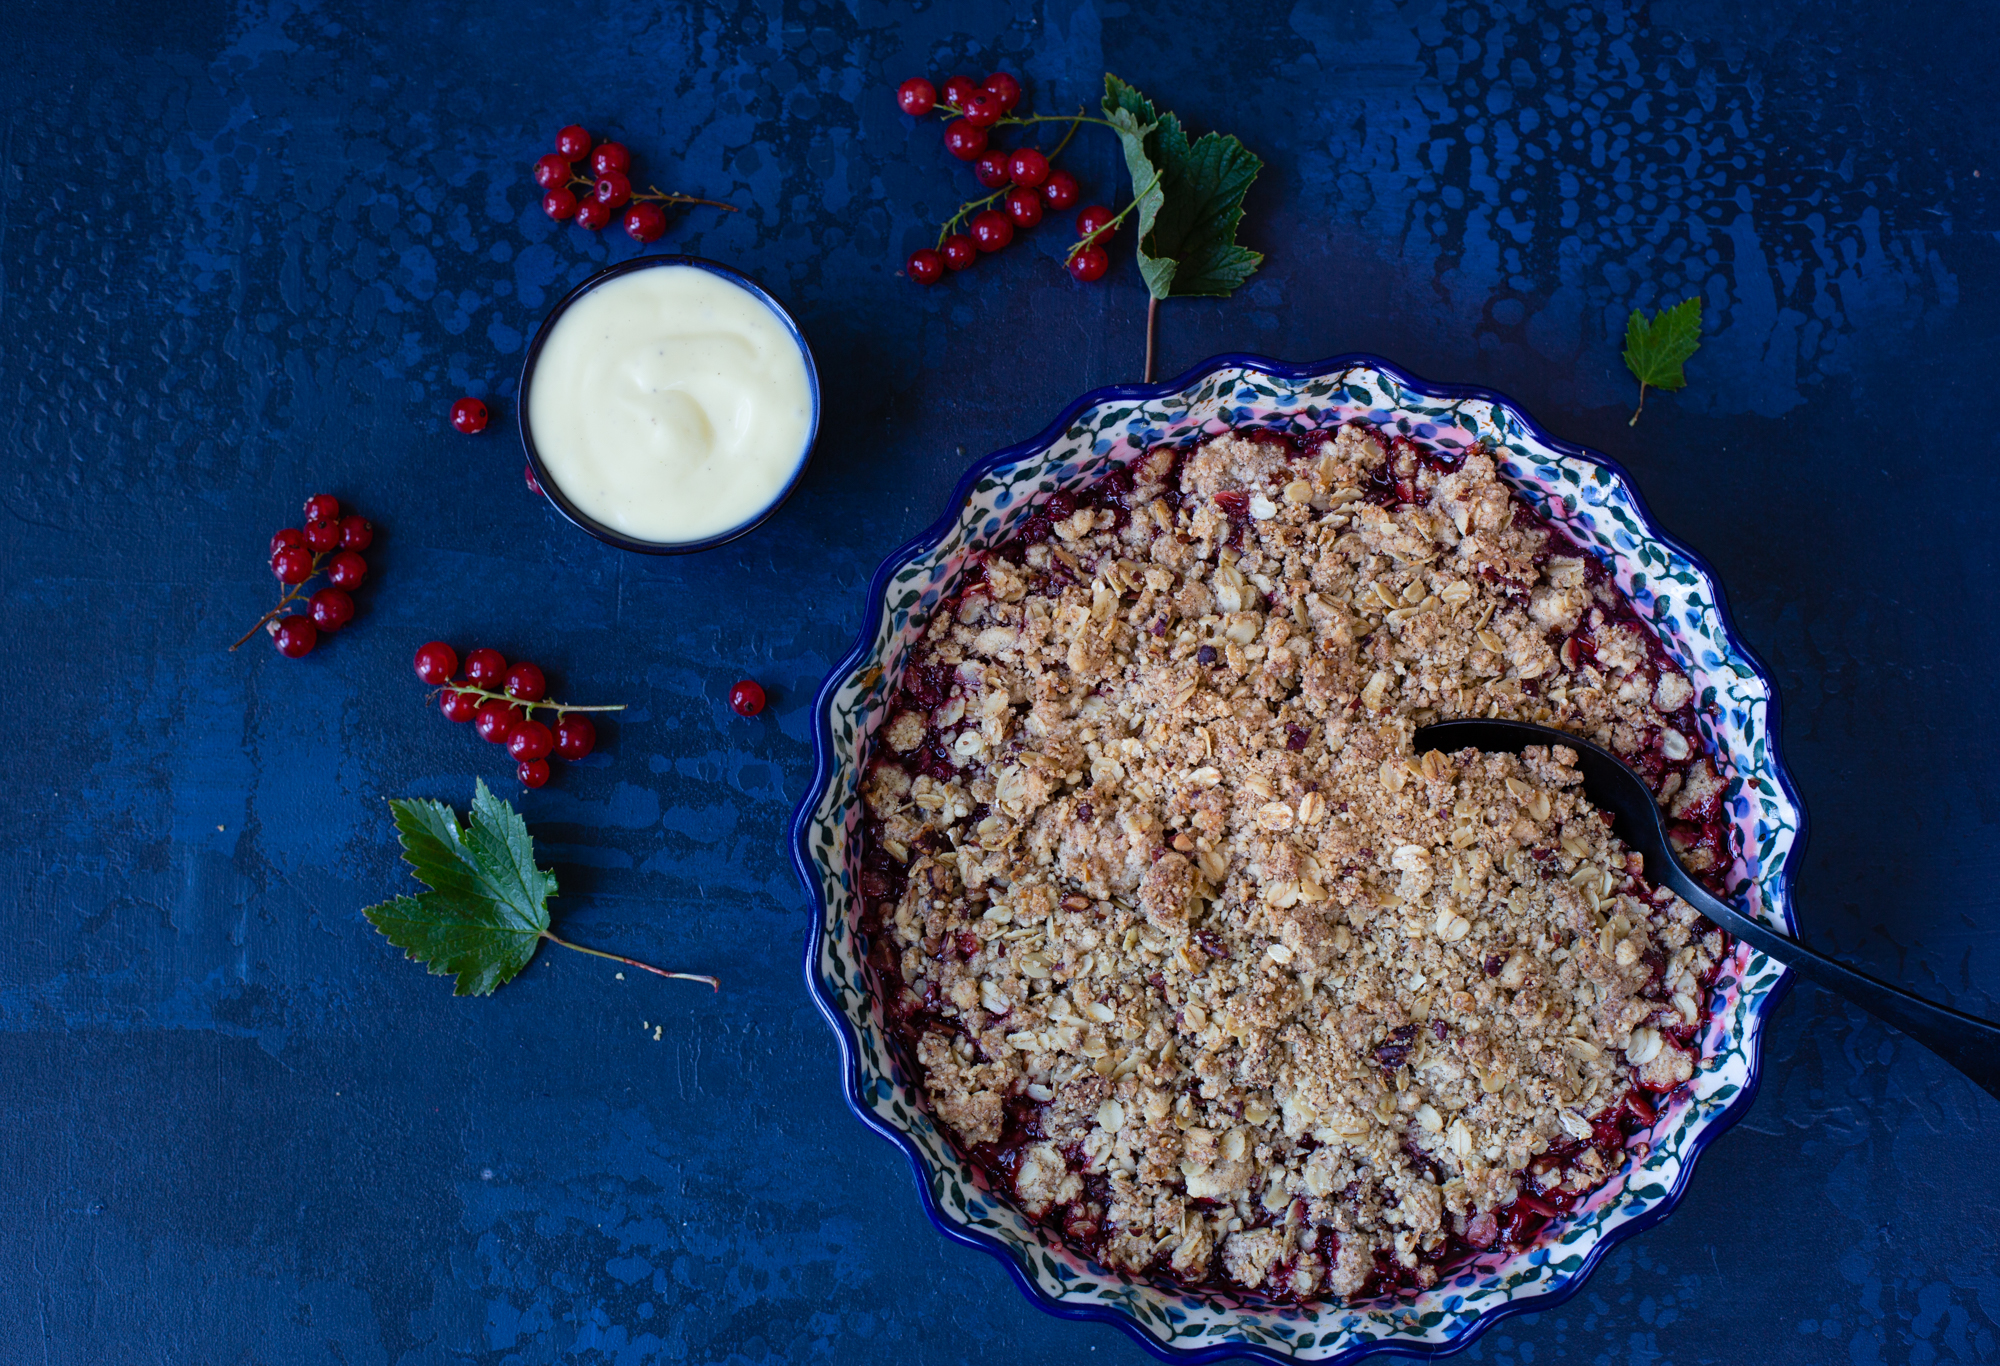 Red currant crumble